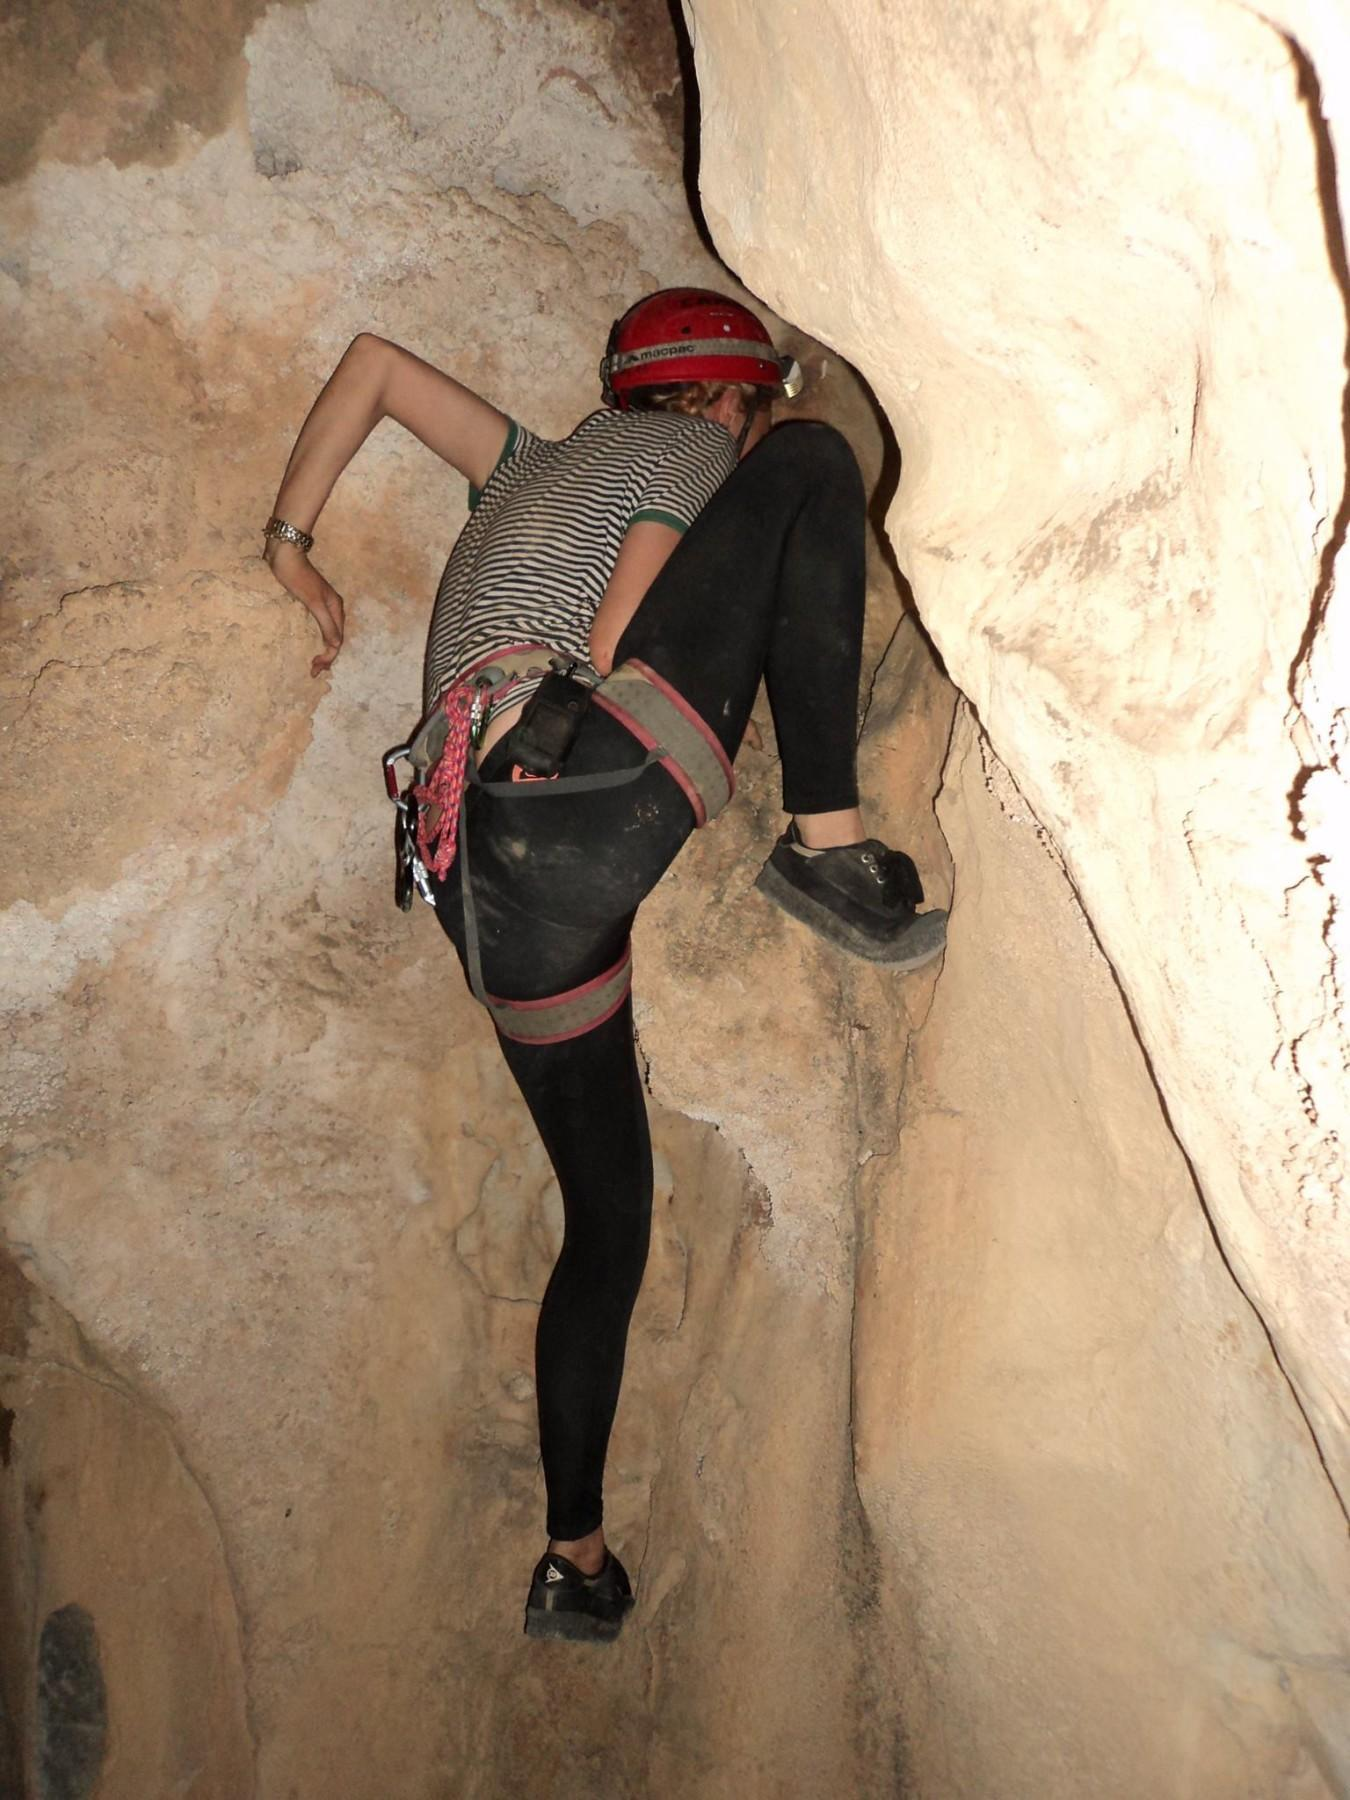 Another cave climb.